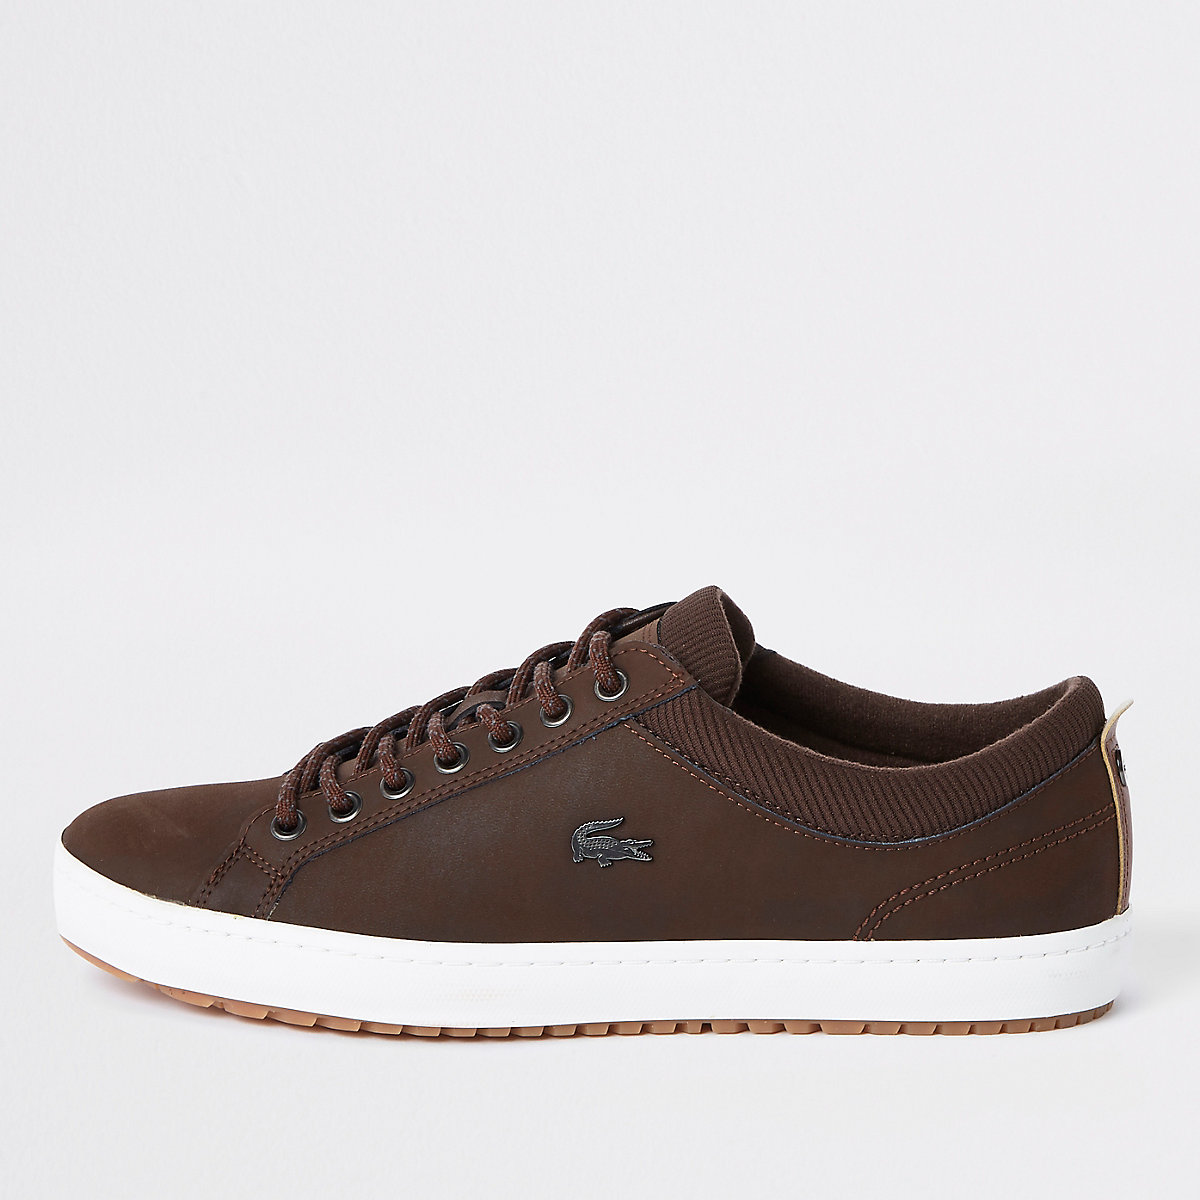 Lacoste brown leather lace-up sneakers